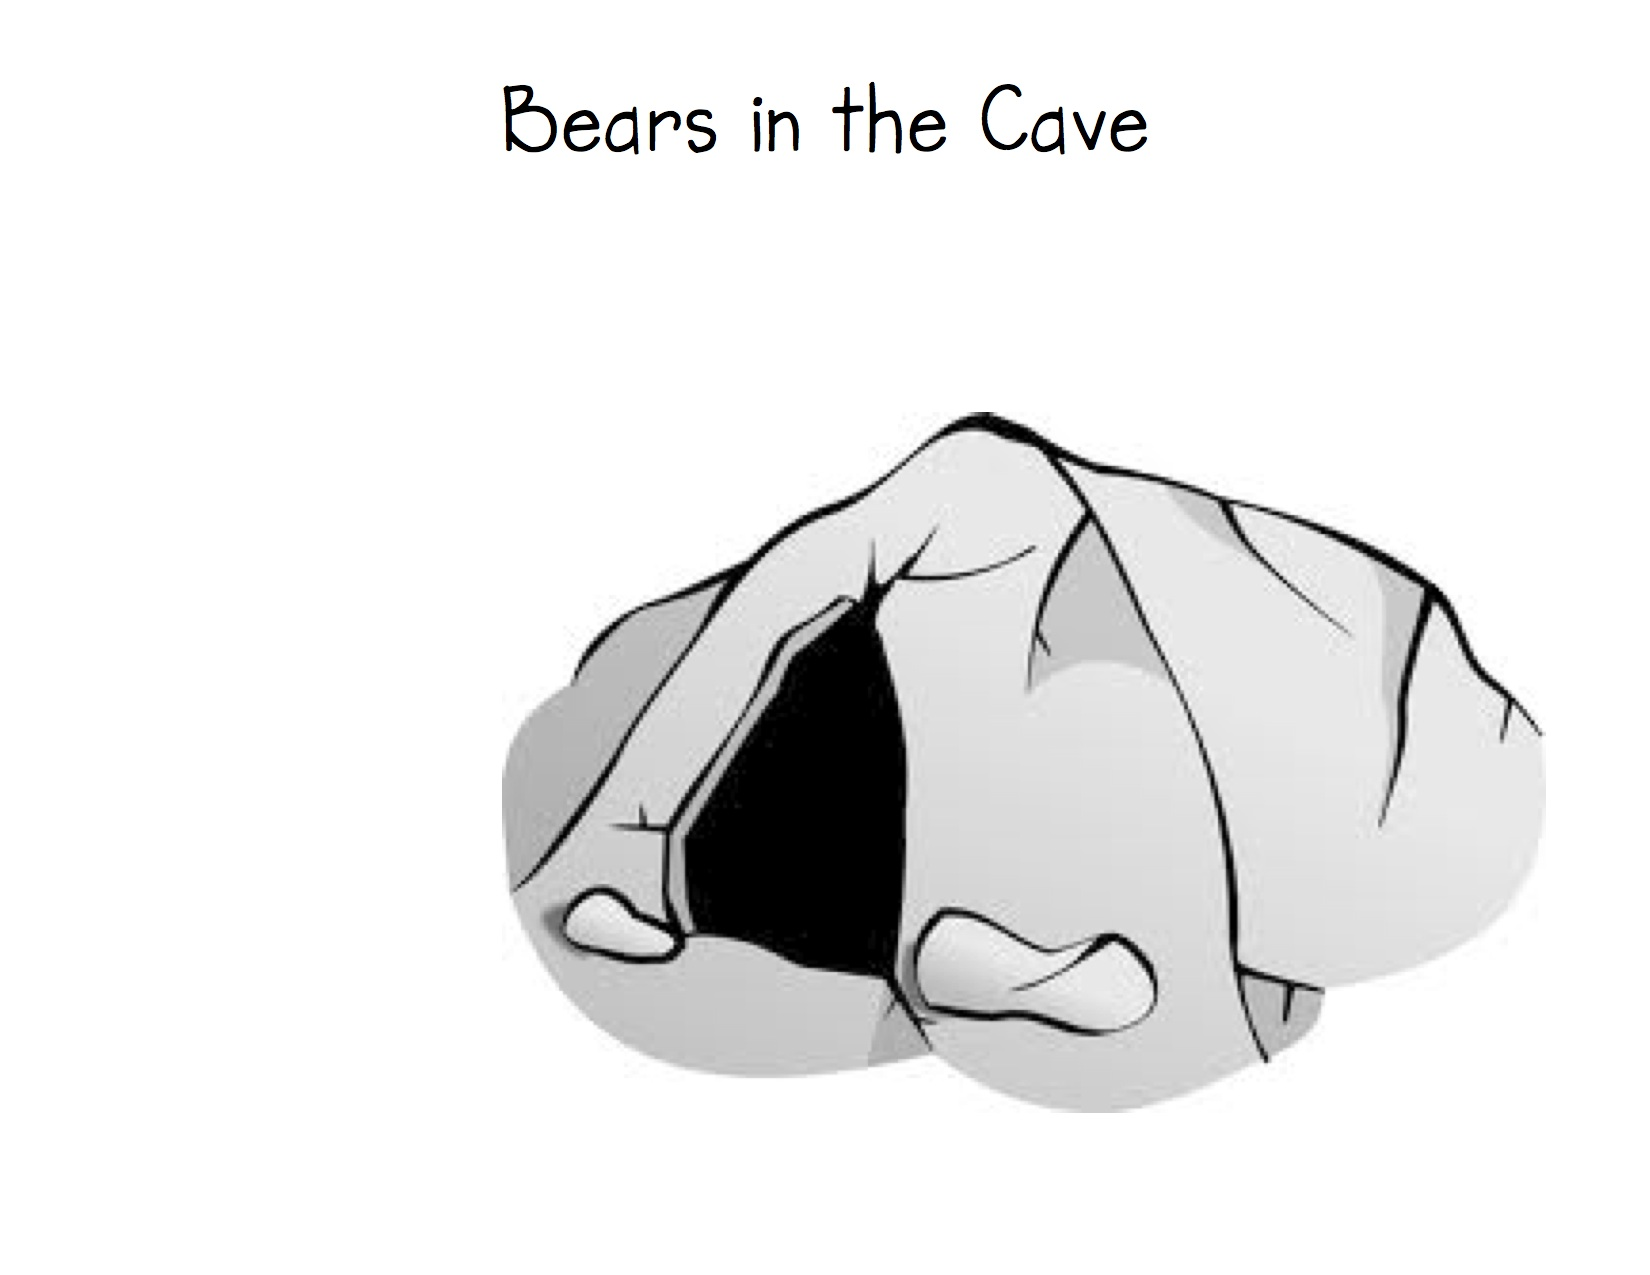 Clipart of open cave entrance.